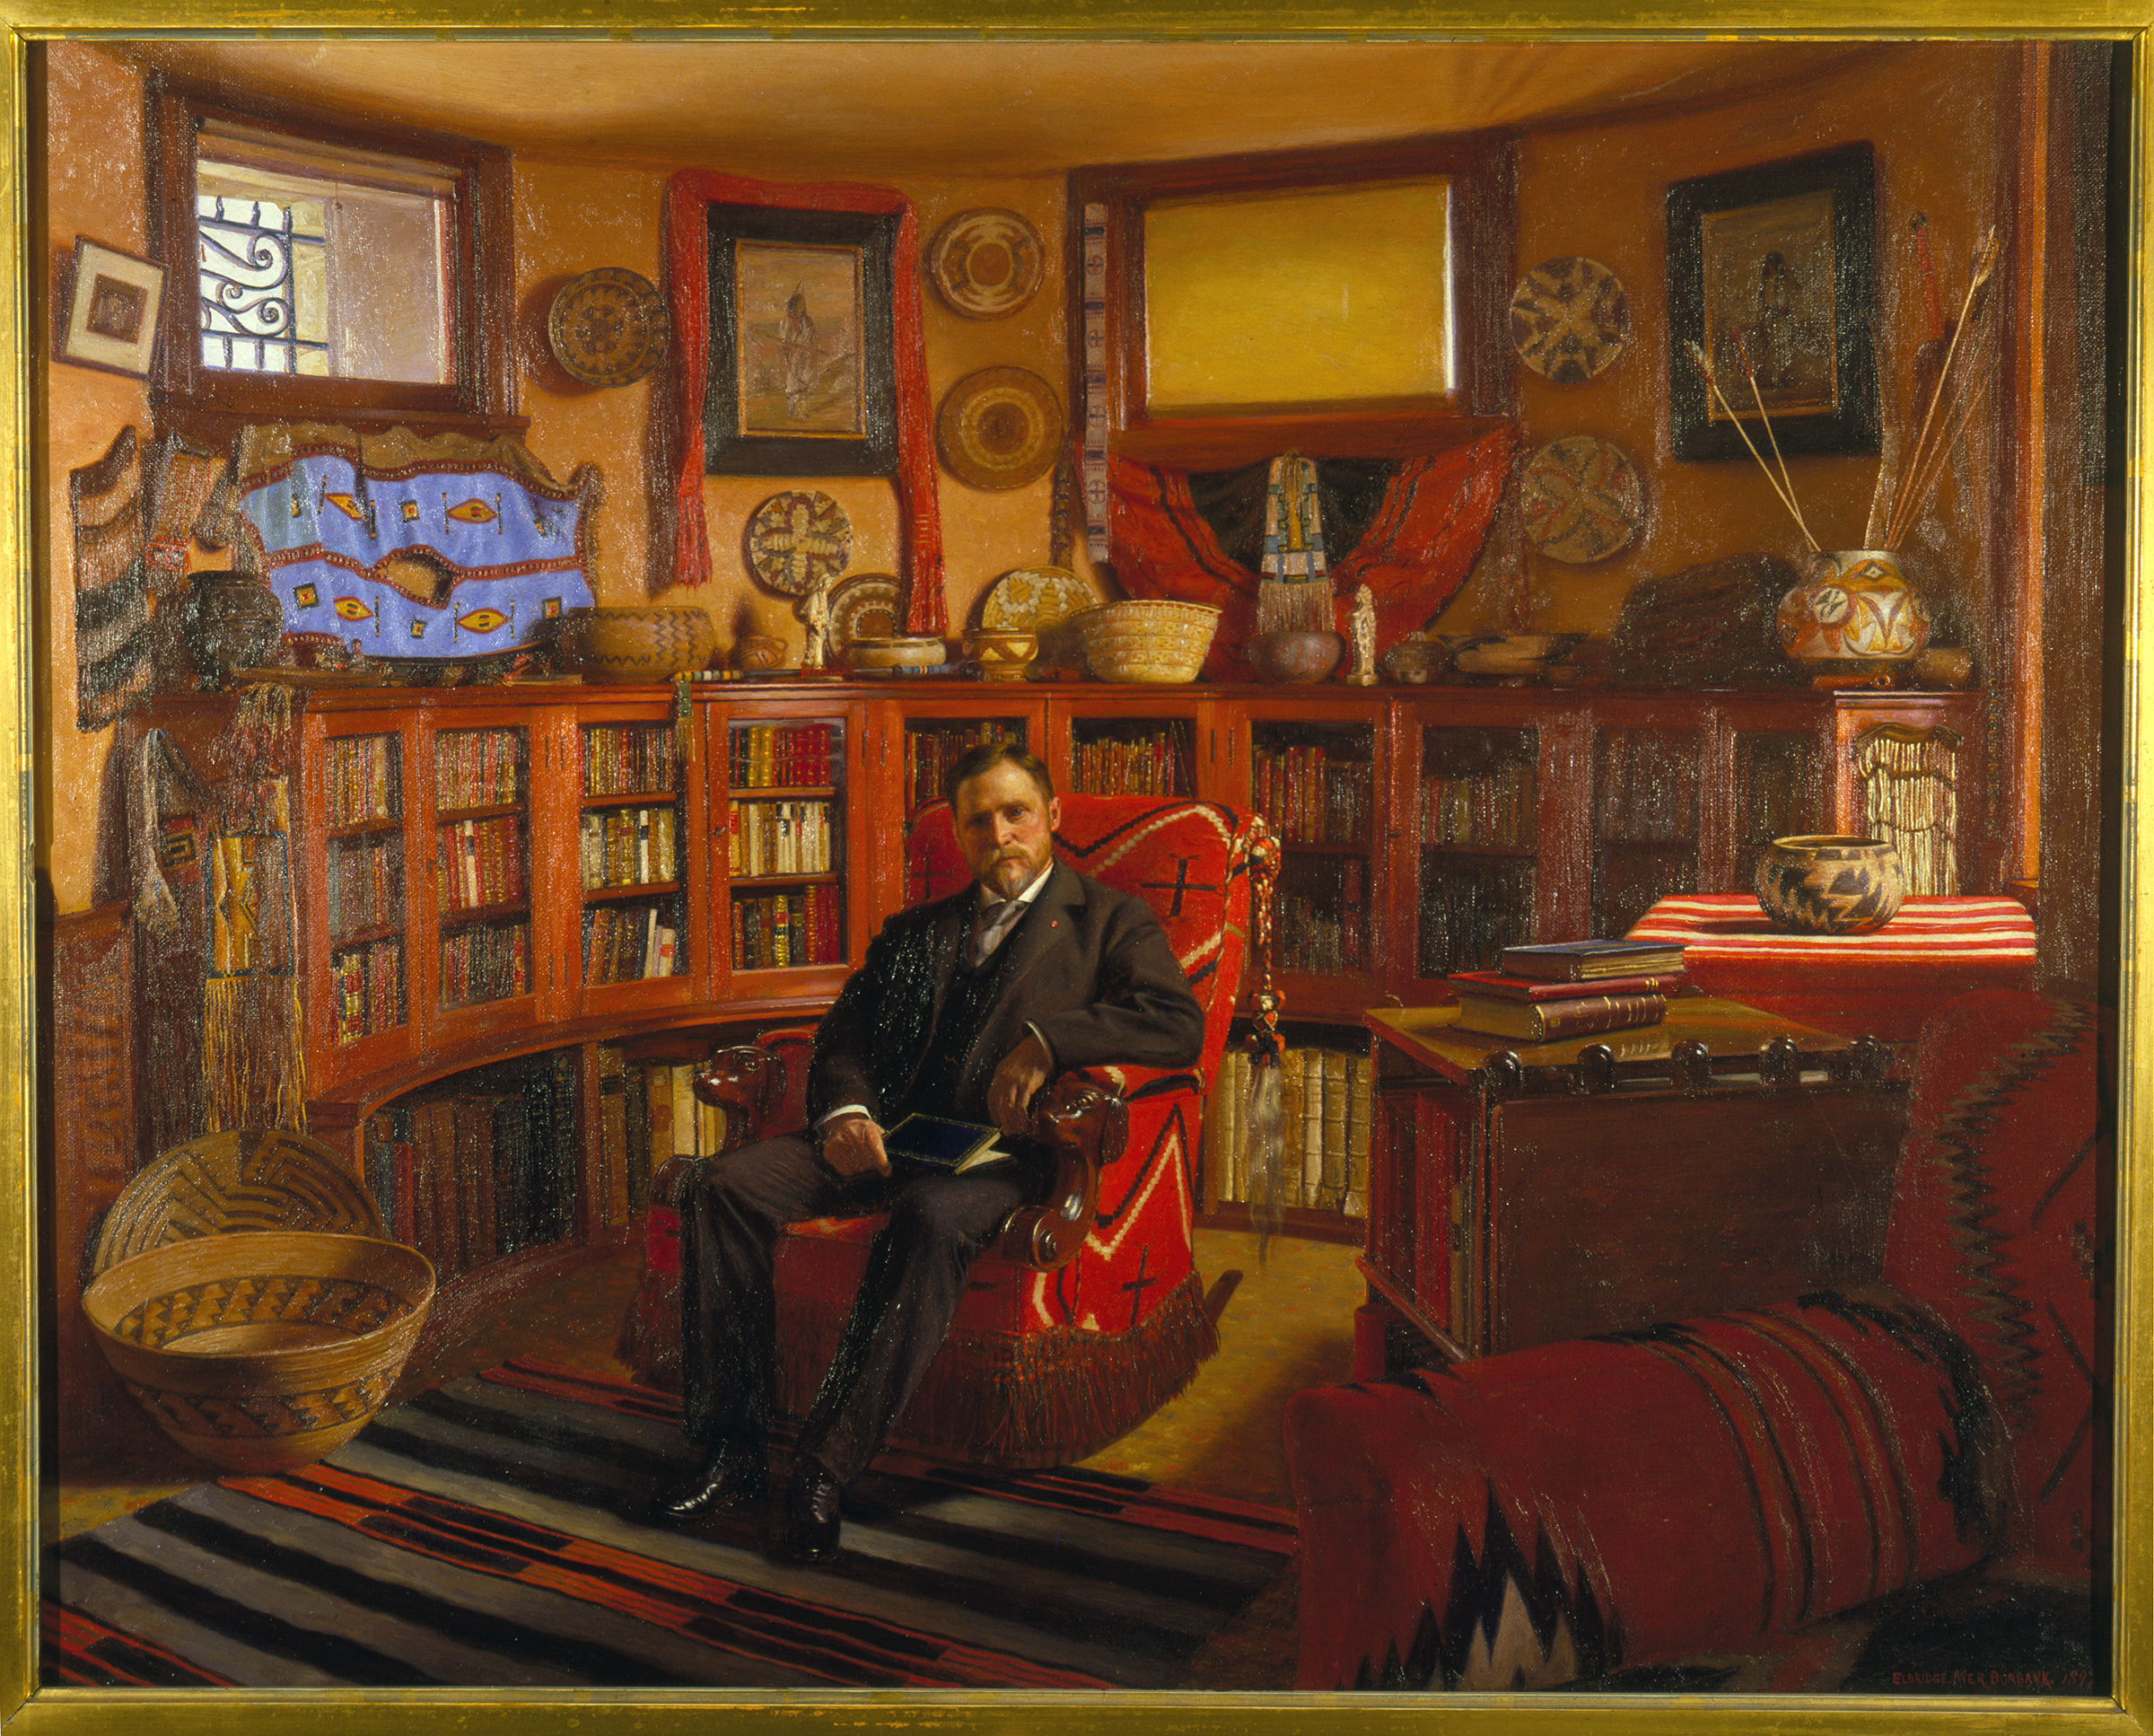 A painted portrait of a man seated in a study filled with books and Native American artifacts.